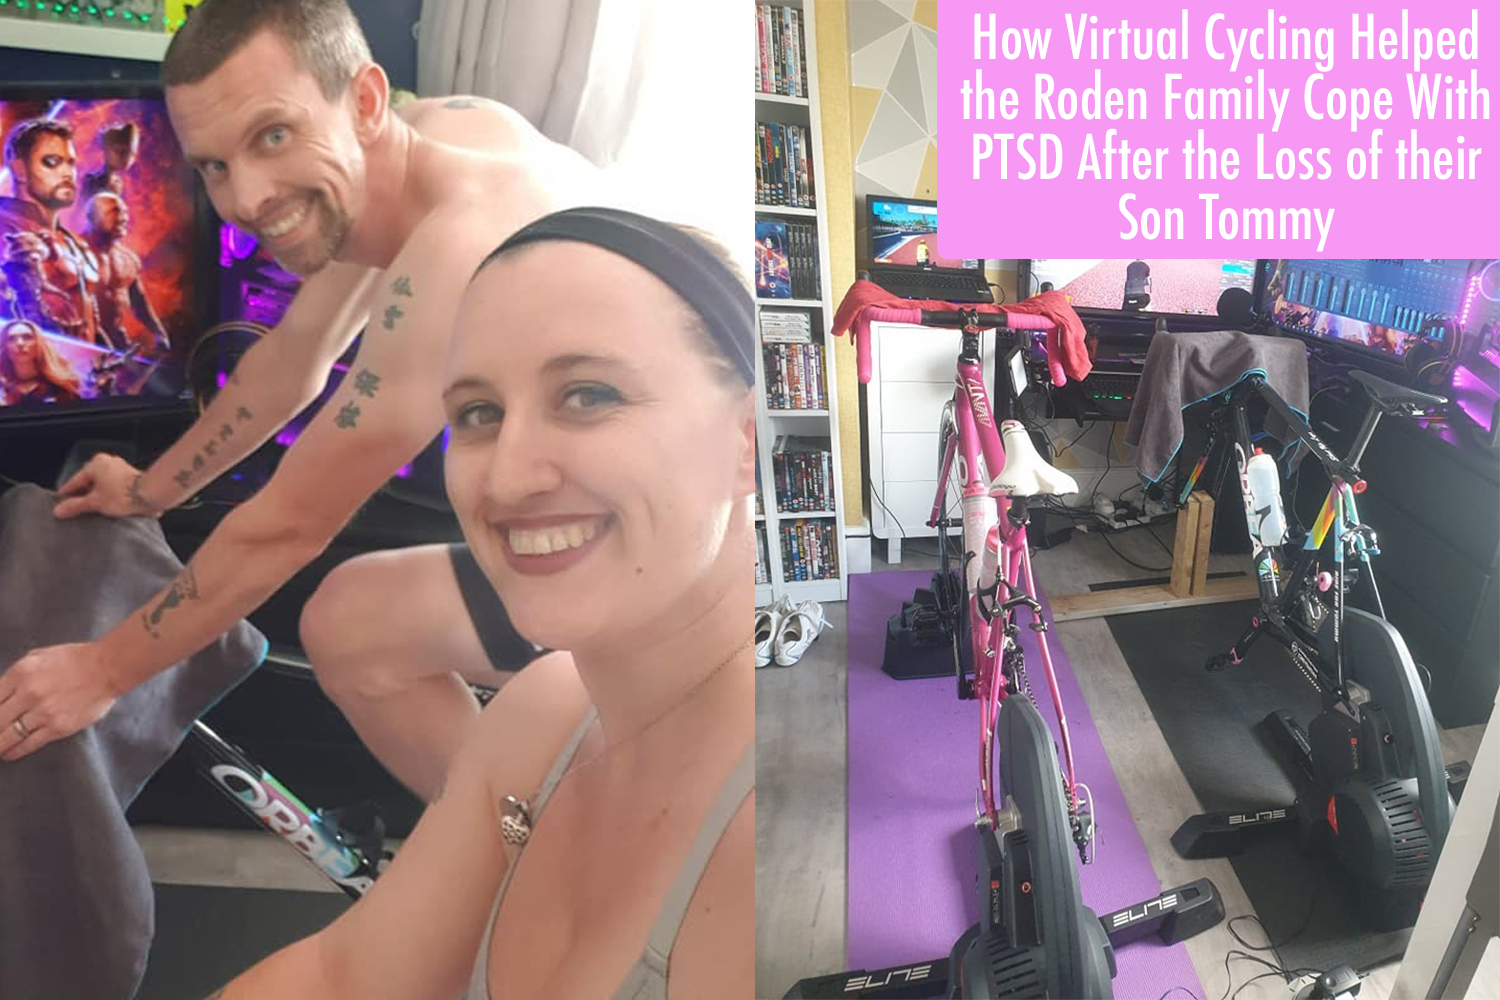 Johnny and Becki Roden Share Virtual Cycling to Cope With the Loss of their Son Tommy